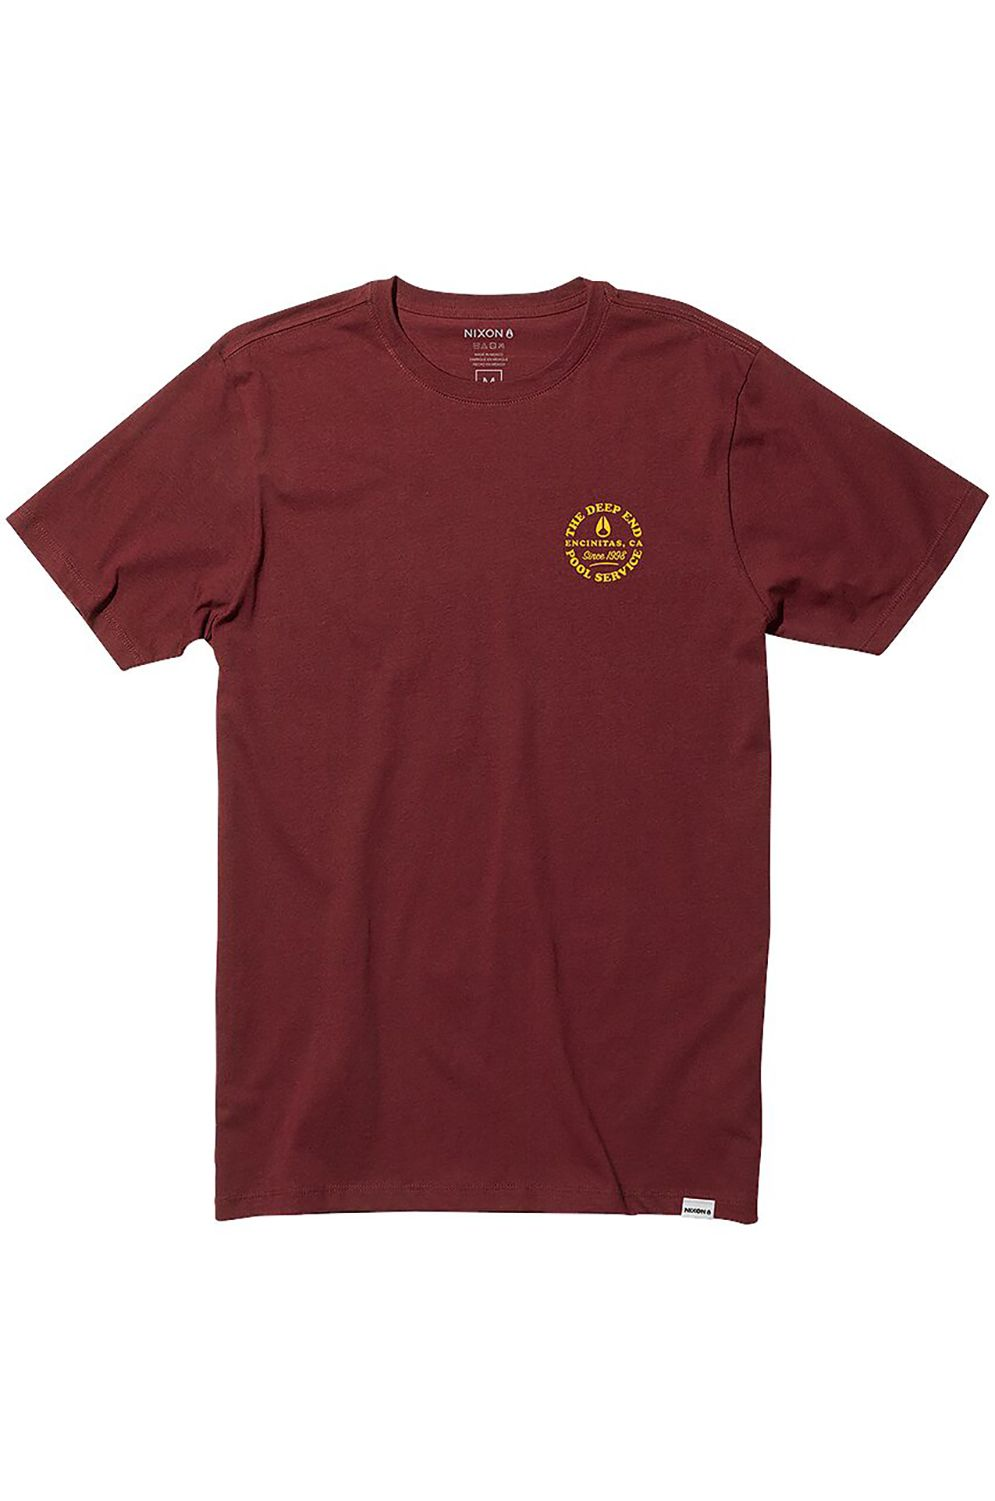 Nixon T-Shirt POOL SERVICE Burgundy